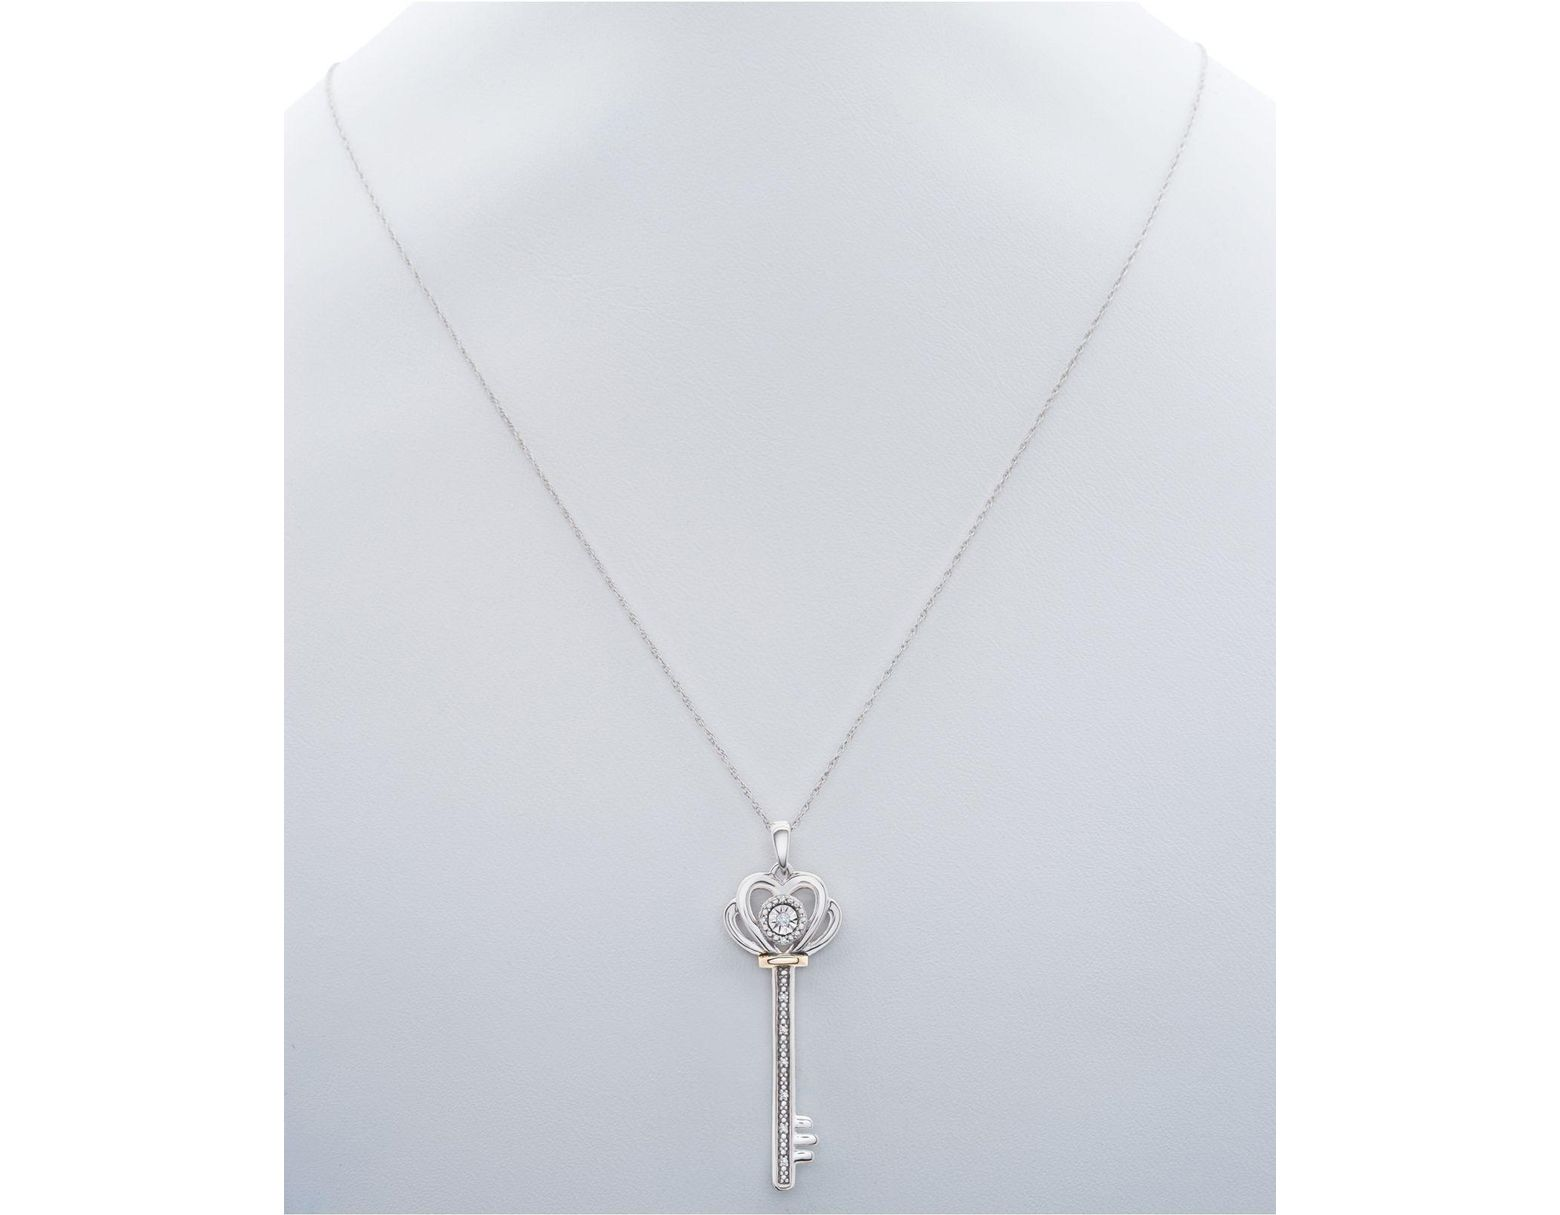 e0db6474f48bb9 Macy's Diamond Accent Two-tone Key Pendant Necklace In Sterling Silver &  10k Gold in Metallic - Save 76% - Lyst